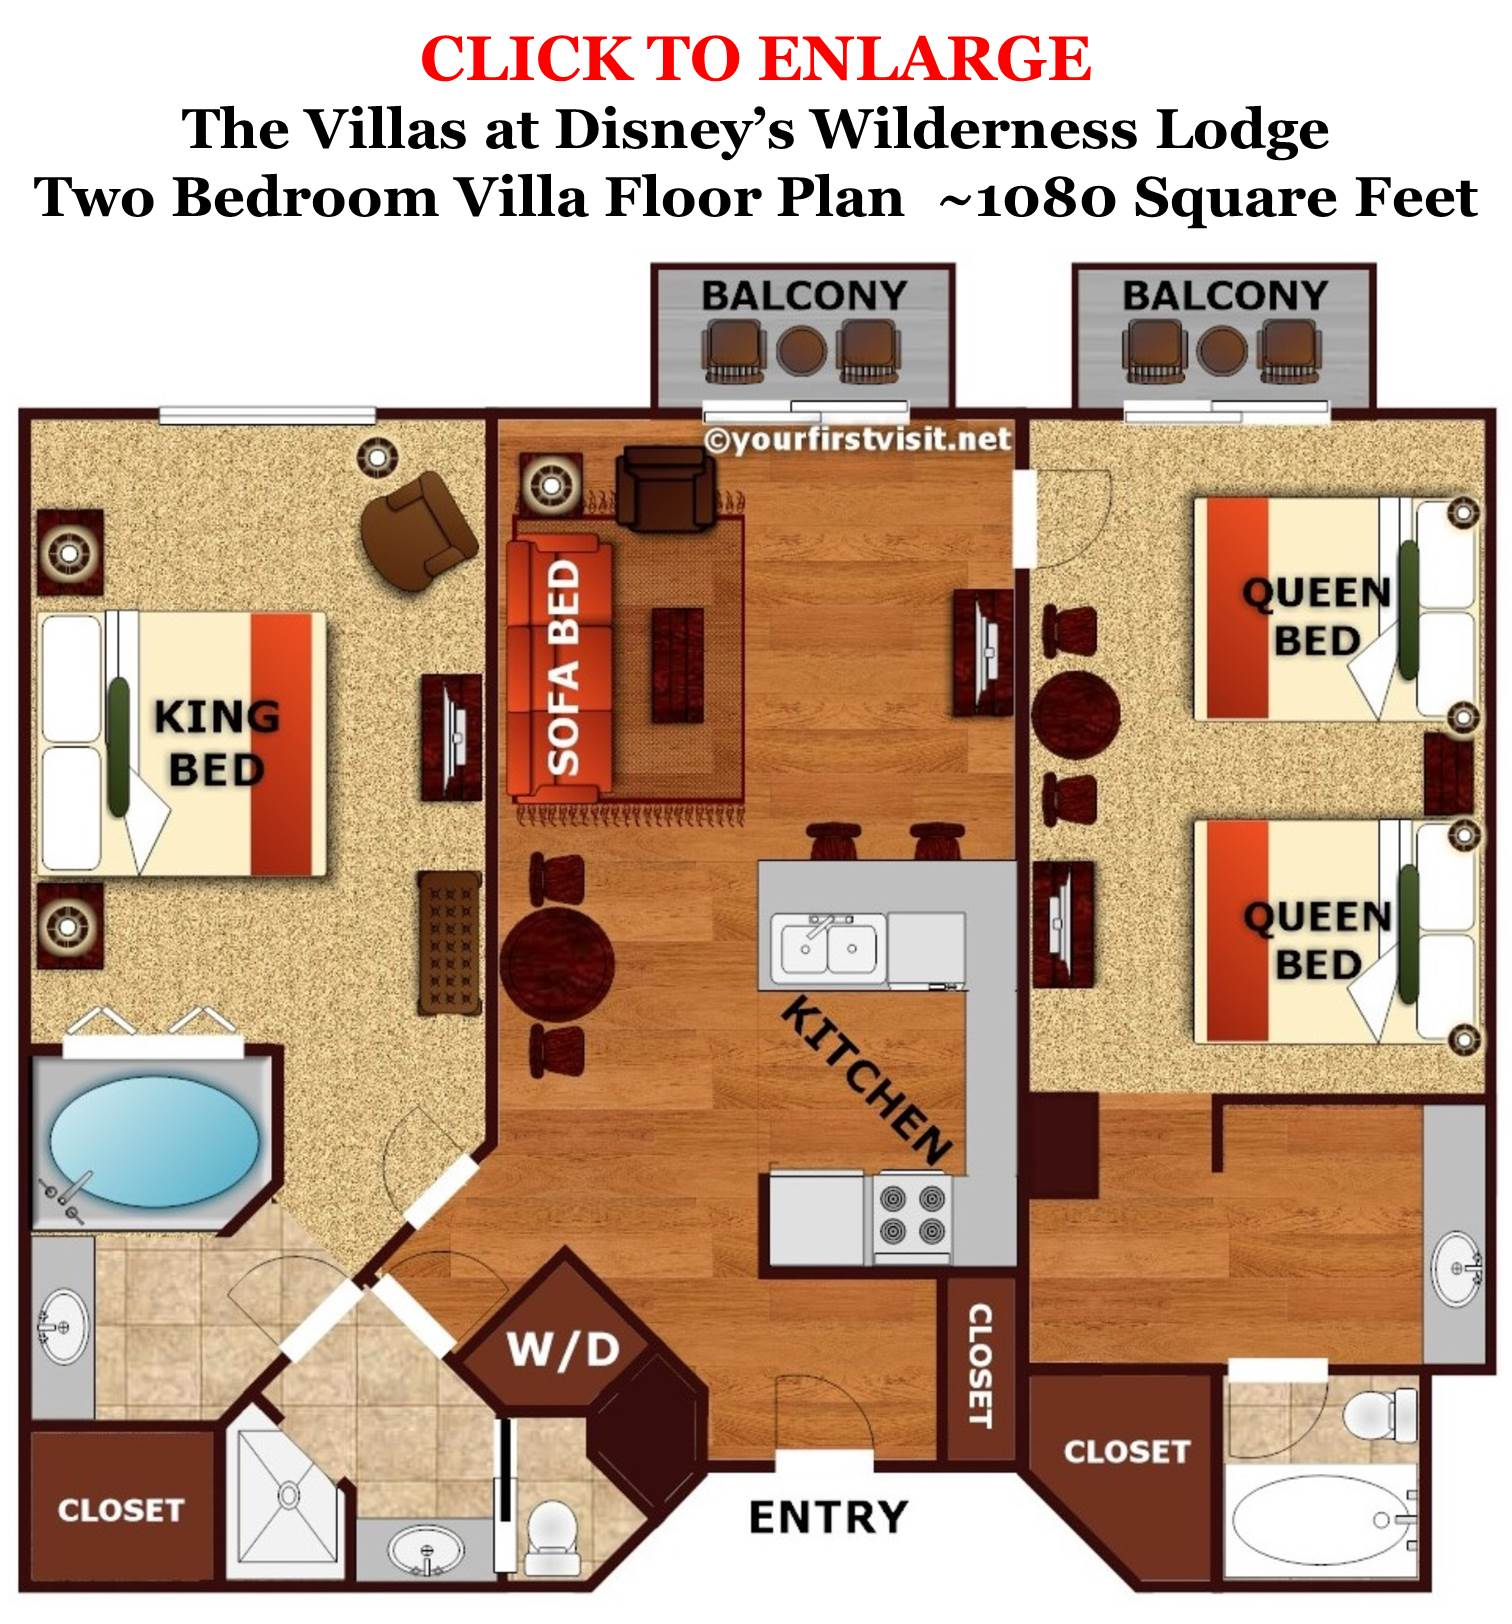 Sleeping Space Options And Bed Types At Walt Disney World Resort Hotels